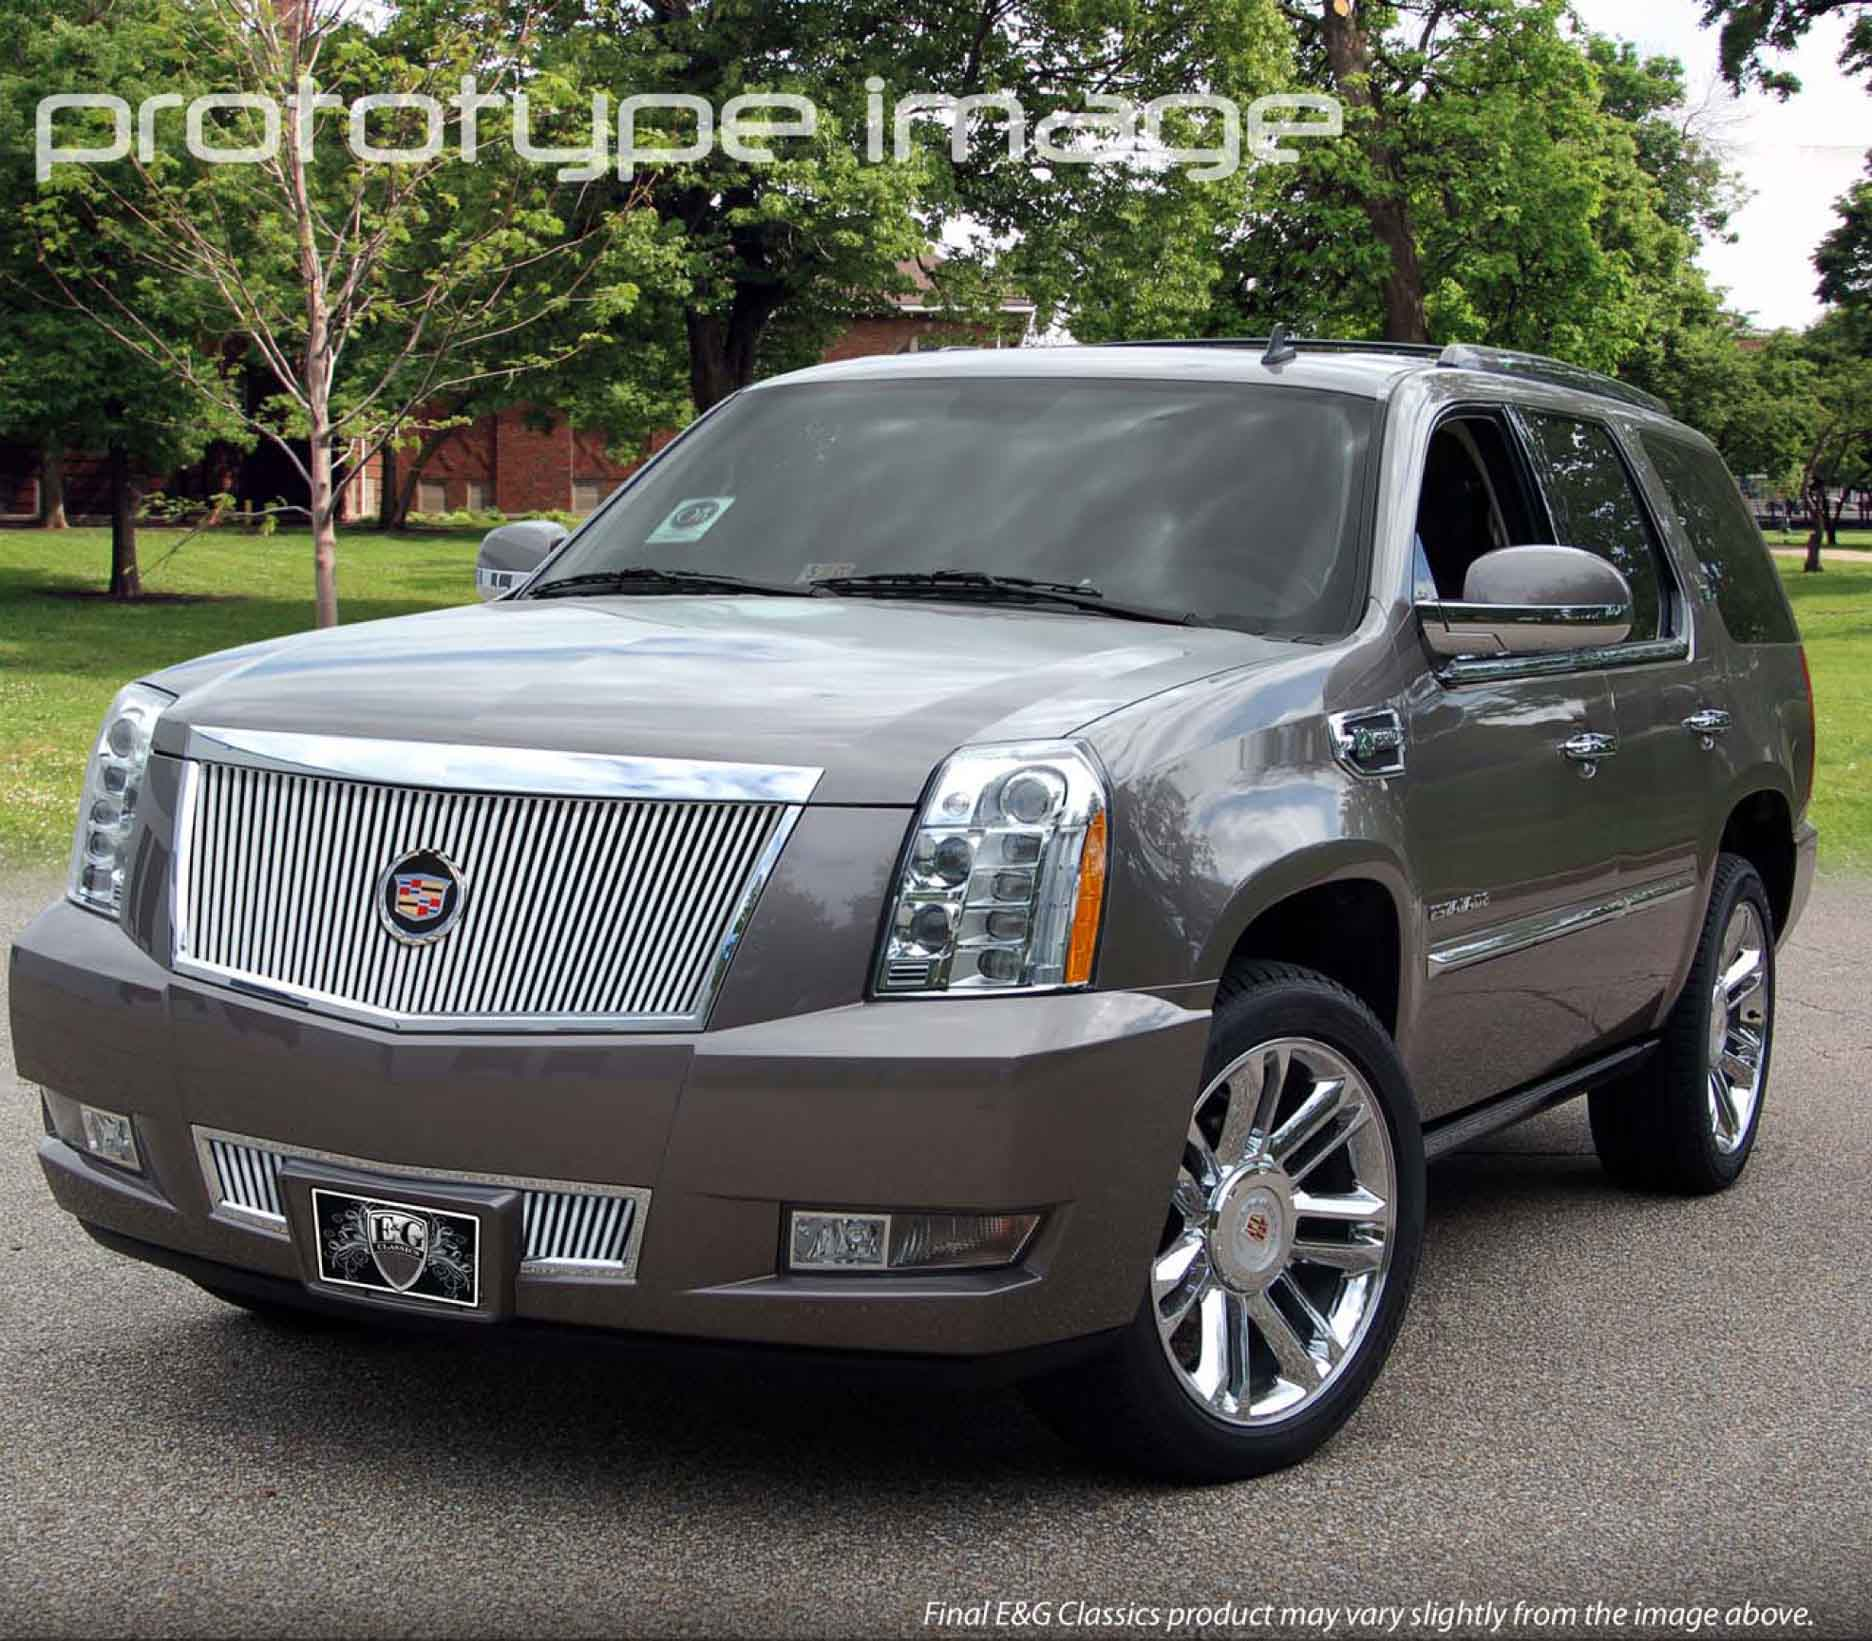 E&G Classics Cadillac Escalade Grille Wing EGX Body Kit